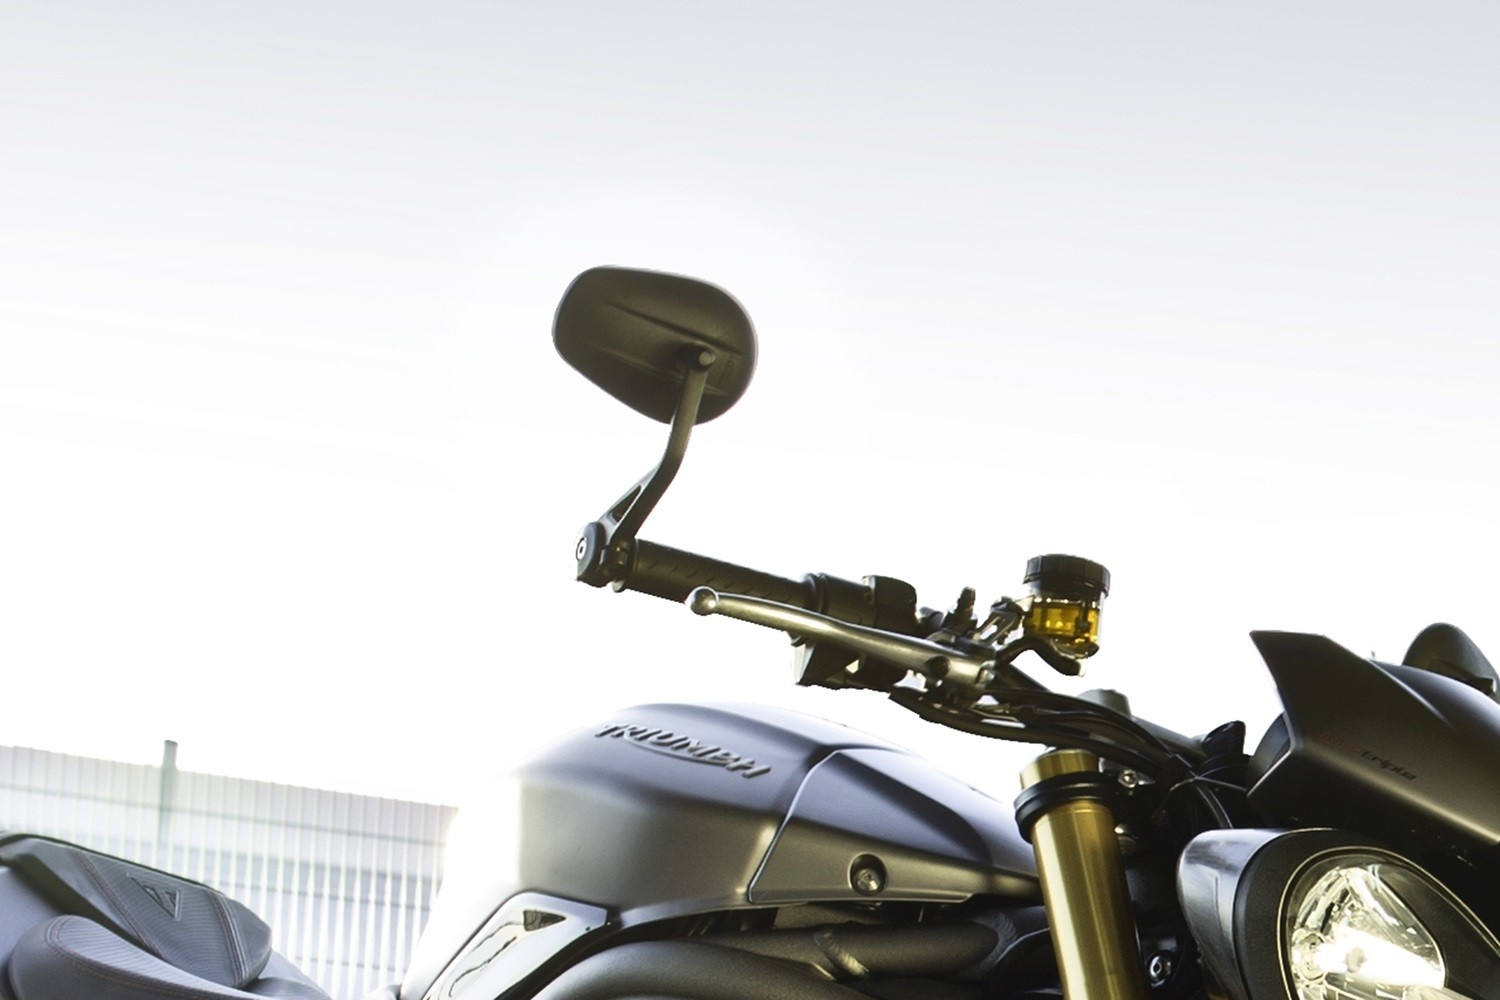 2016 Triumph Speed Triple R And Speed Triple S Handlebar Mirrors Intended For Triple Mirrors (View 9 of 15)